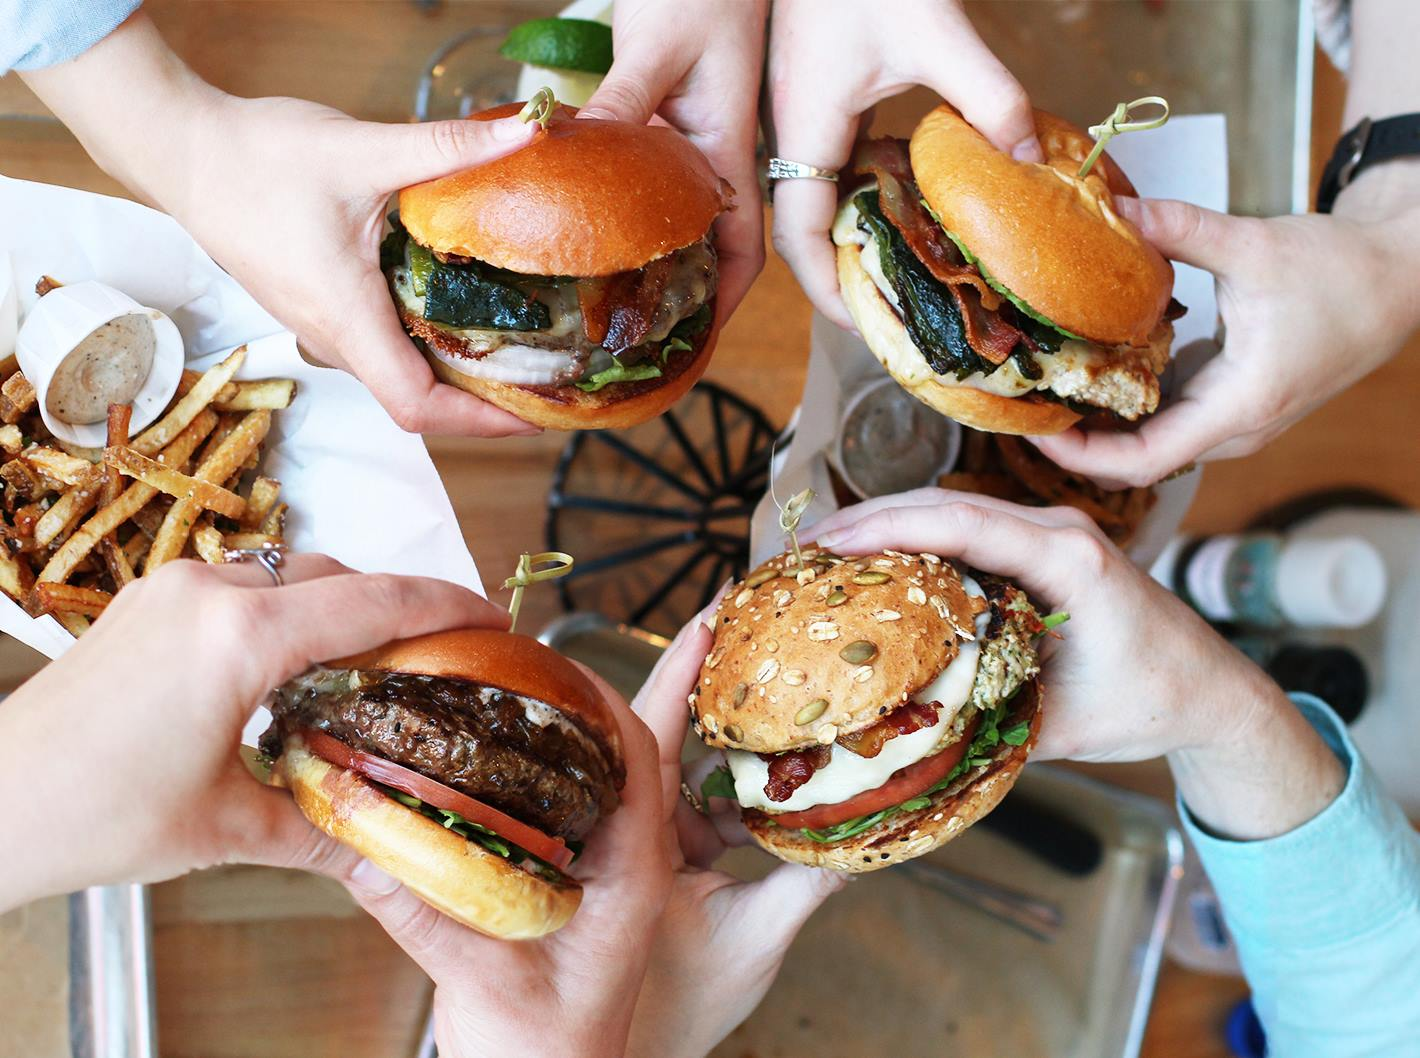 Burgers from Hopdoddy